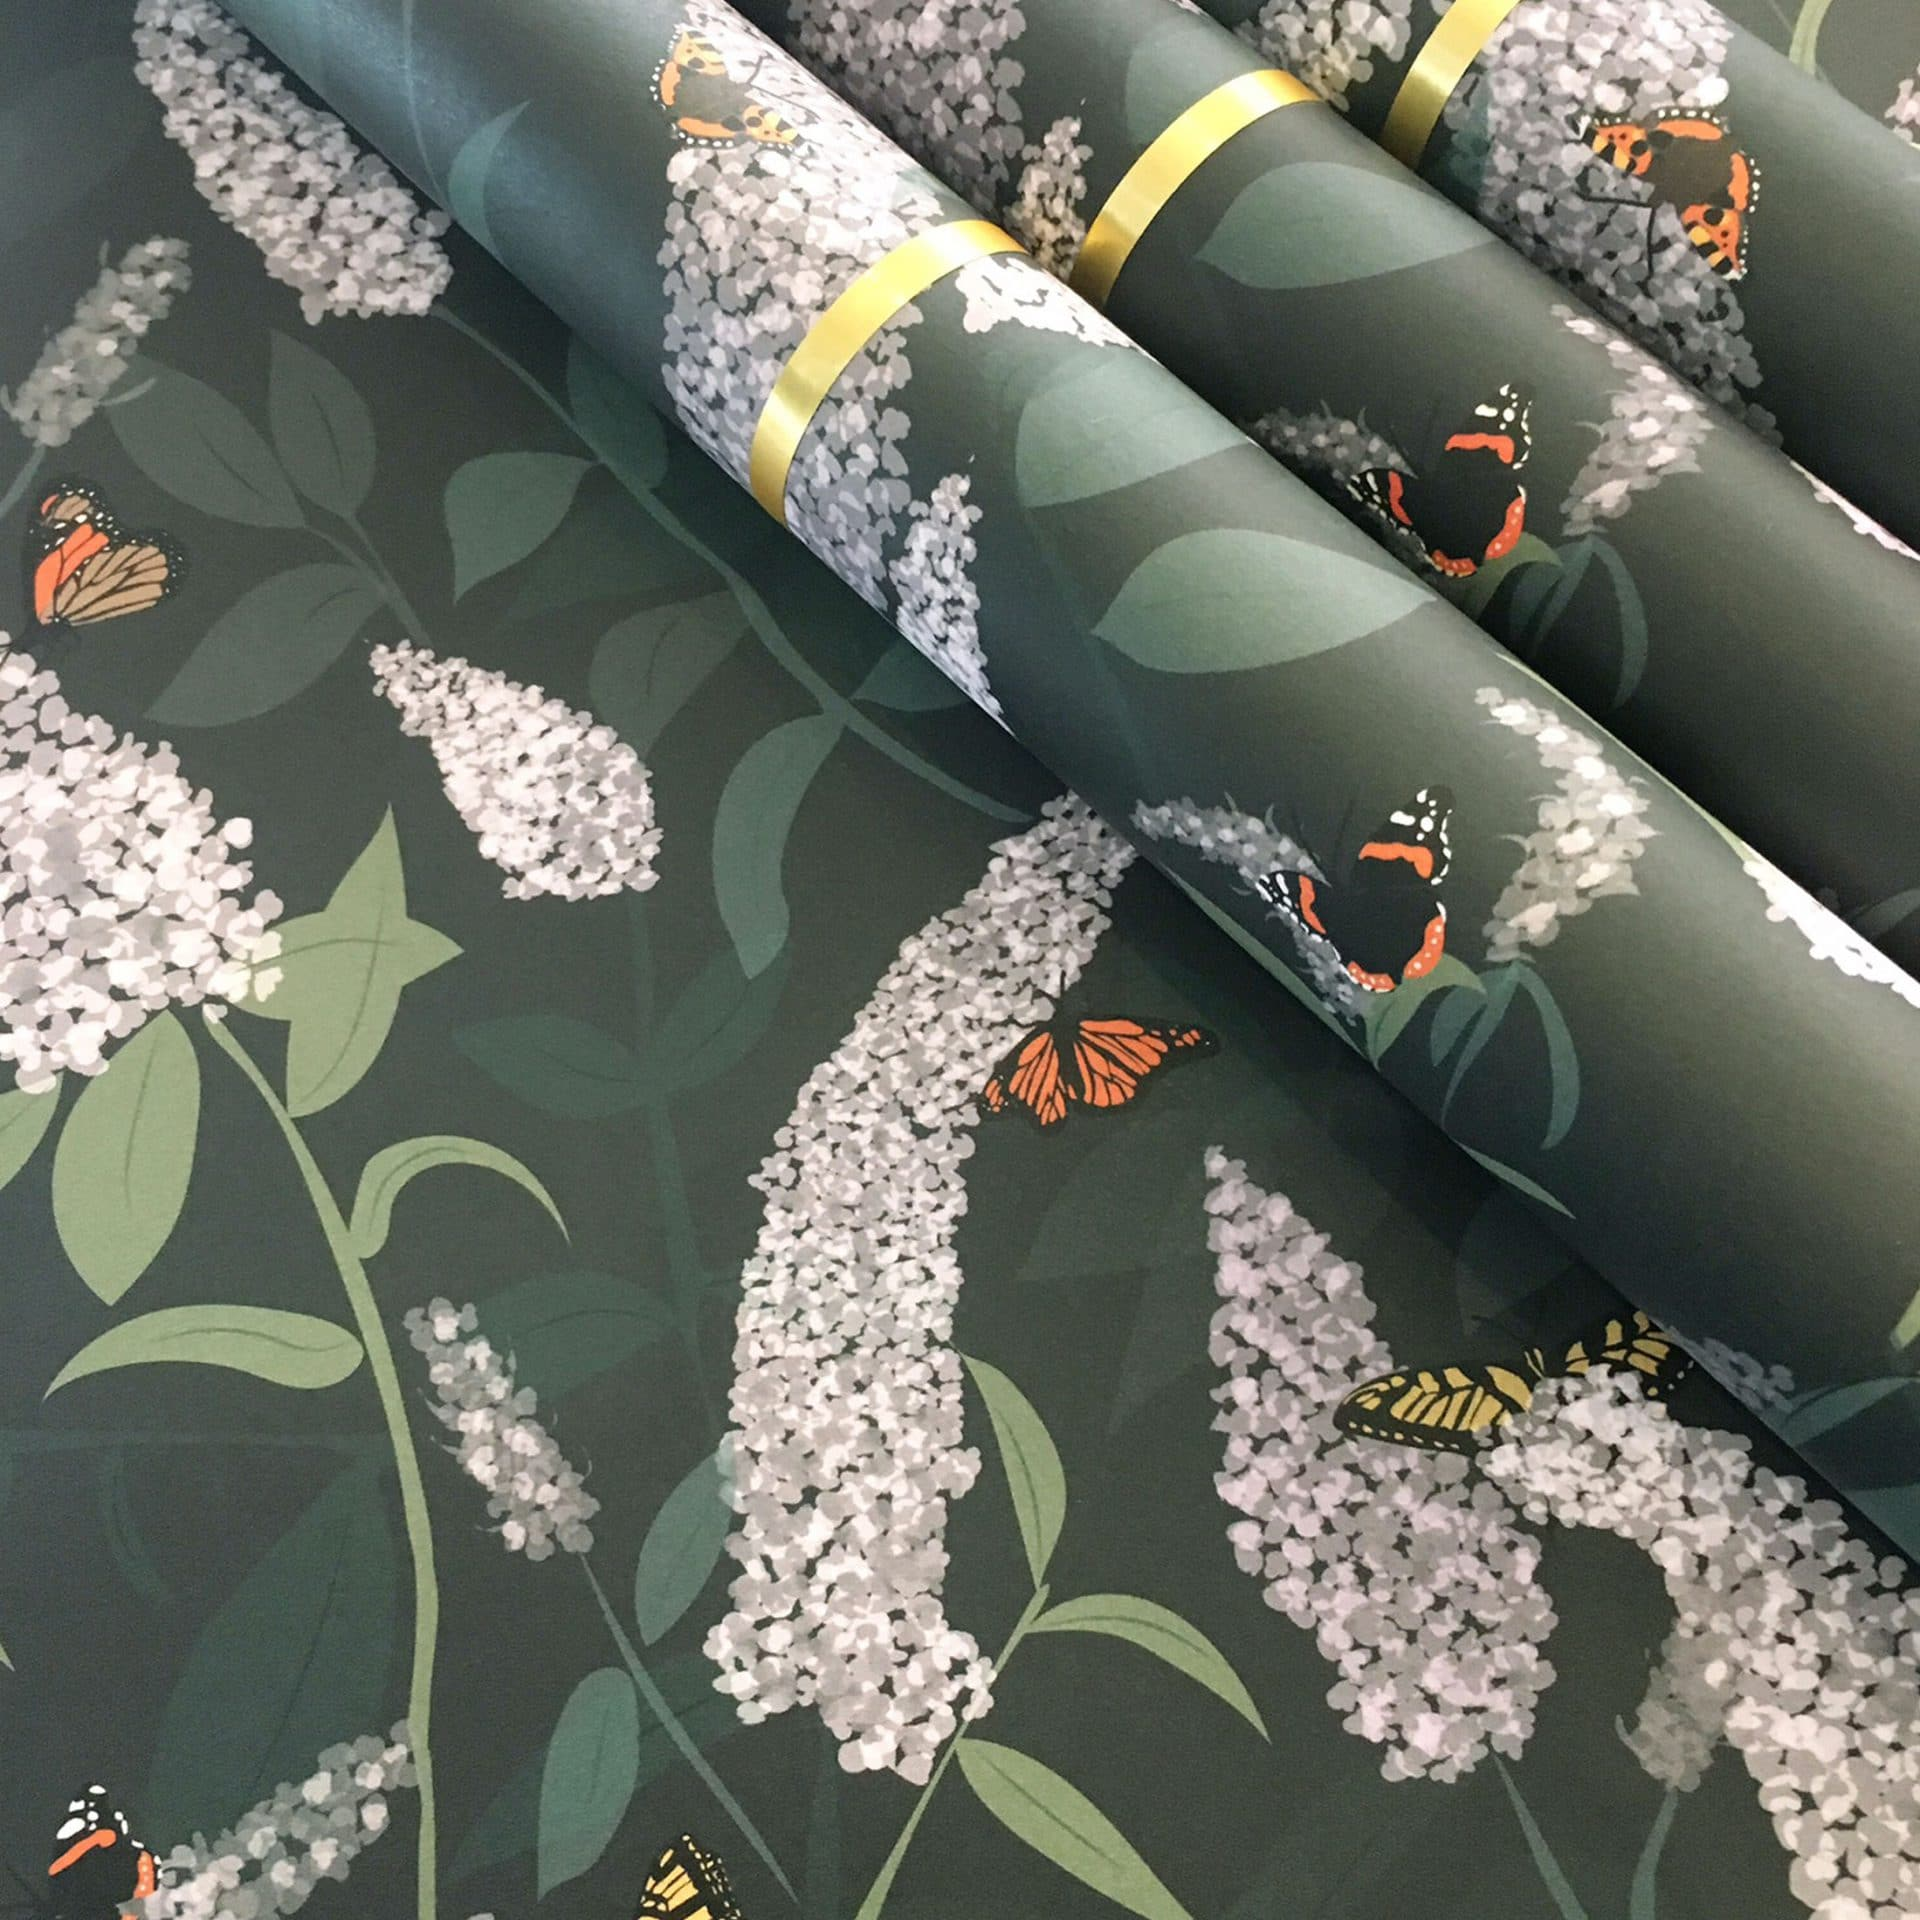 ... Buddleia Floral Patterned Giftwrap By Lorna Syson.